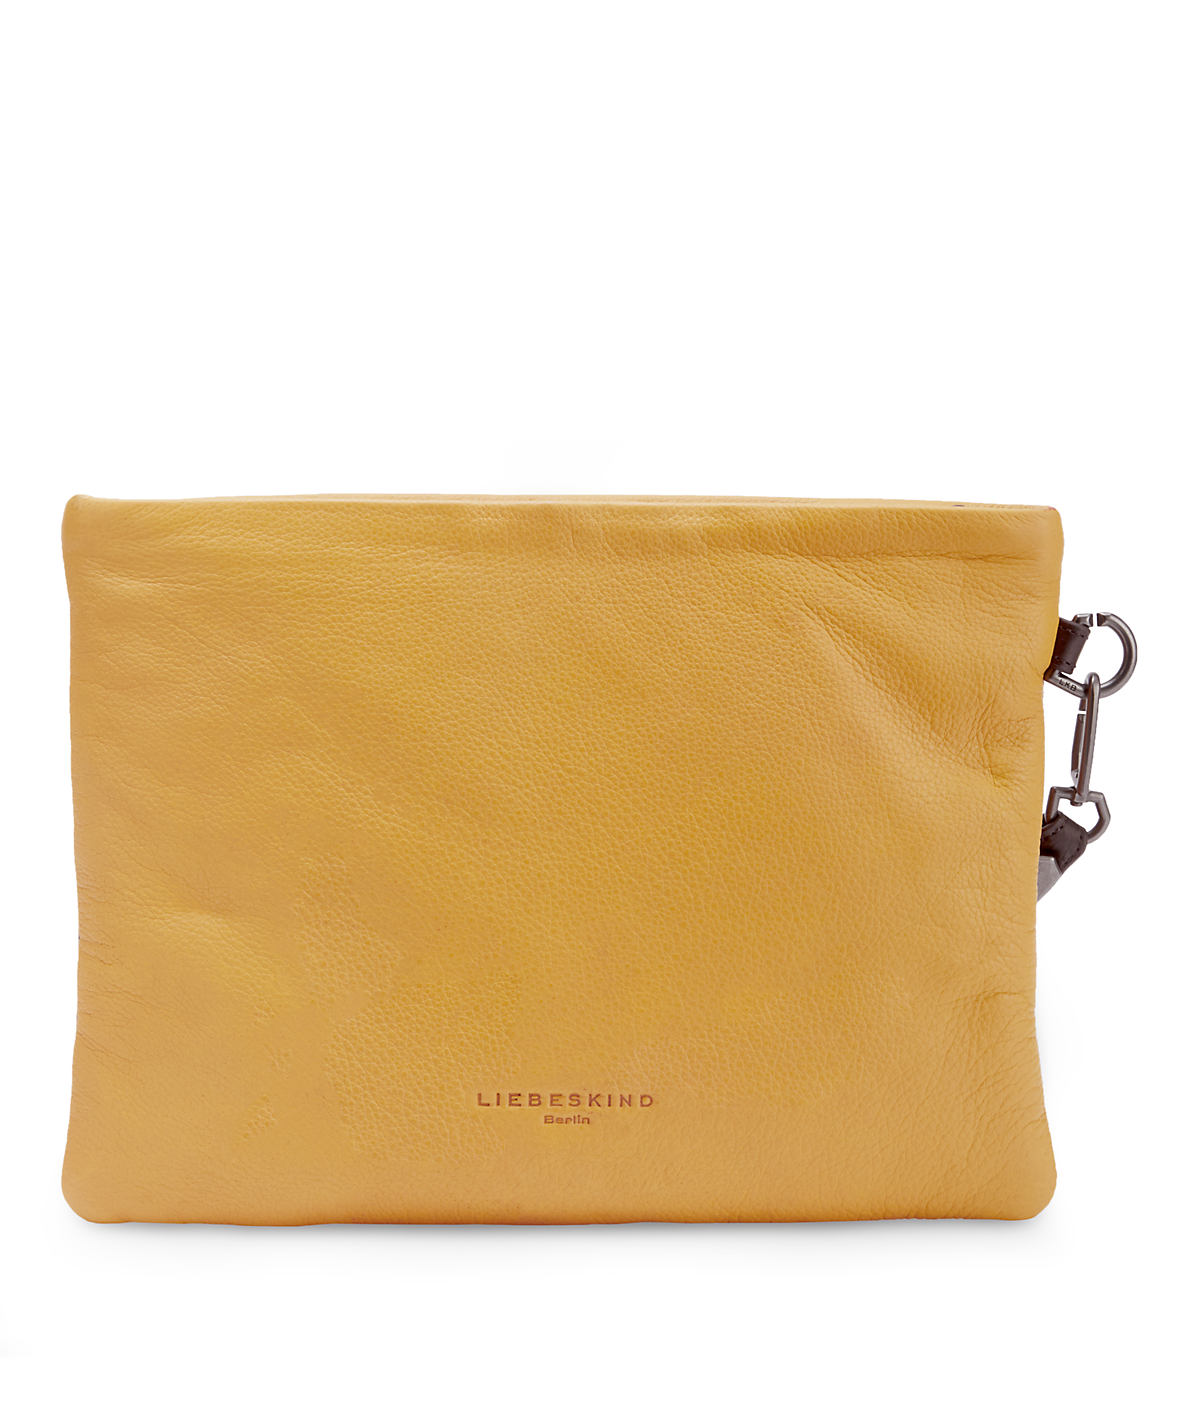 Takasaki clutch from liebeskind